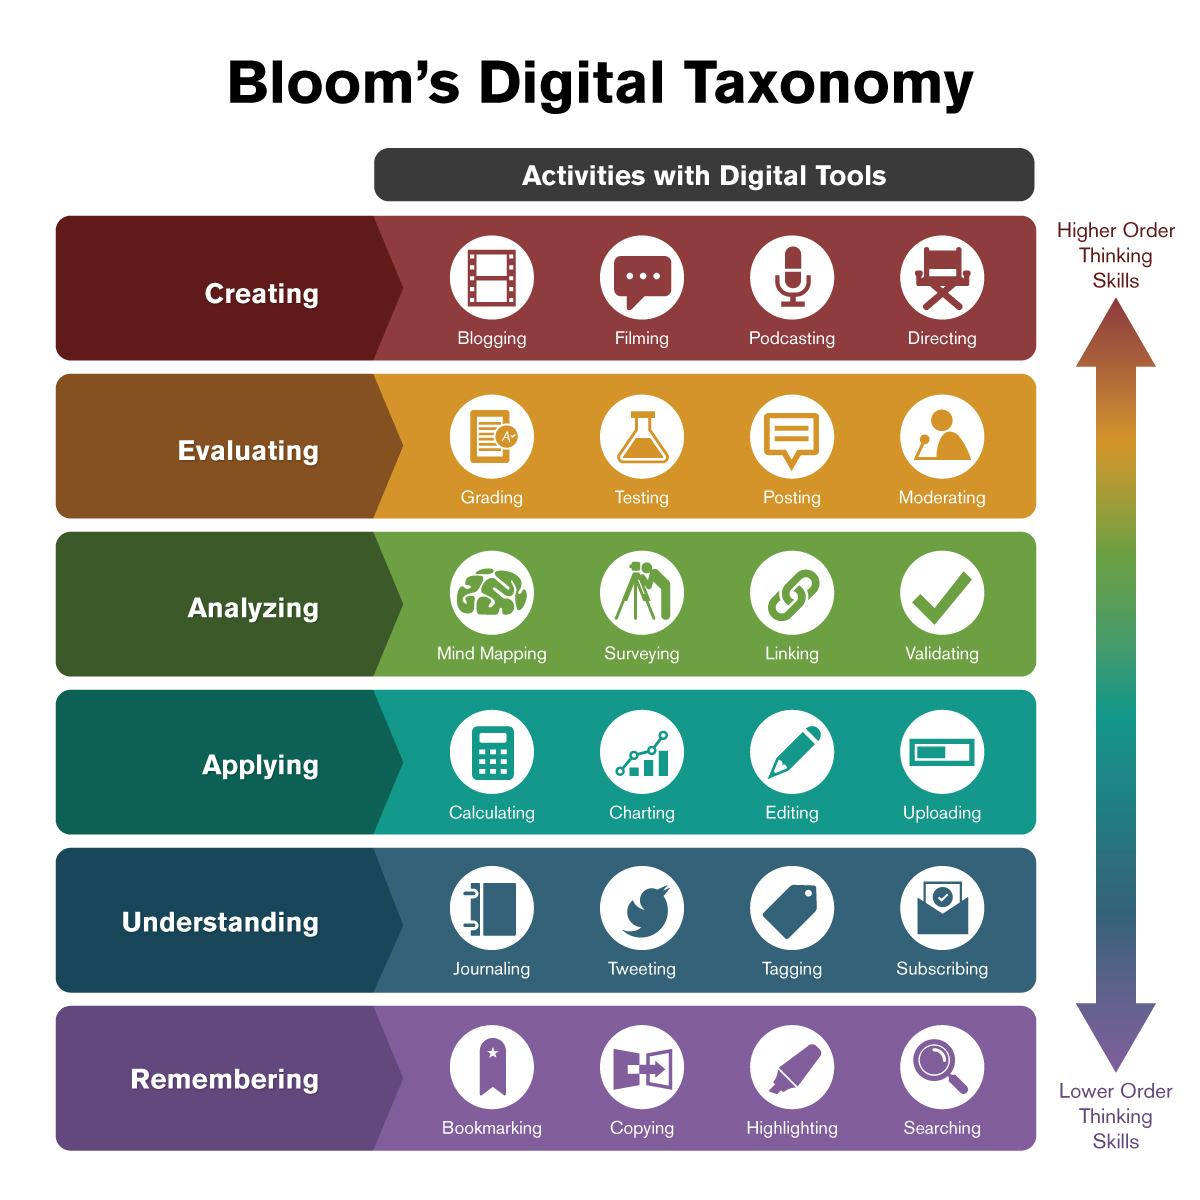 Bloom's Digital Taxonomy: Bloom's Taxonomy applied to digital activities.